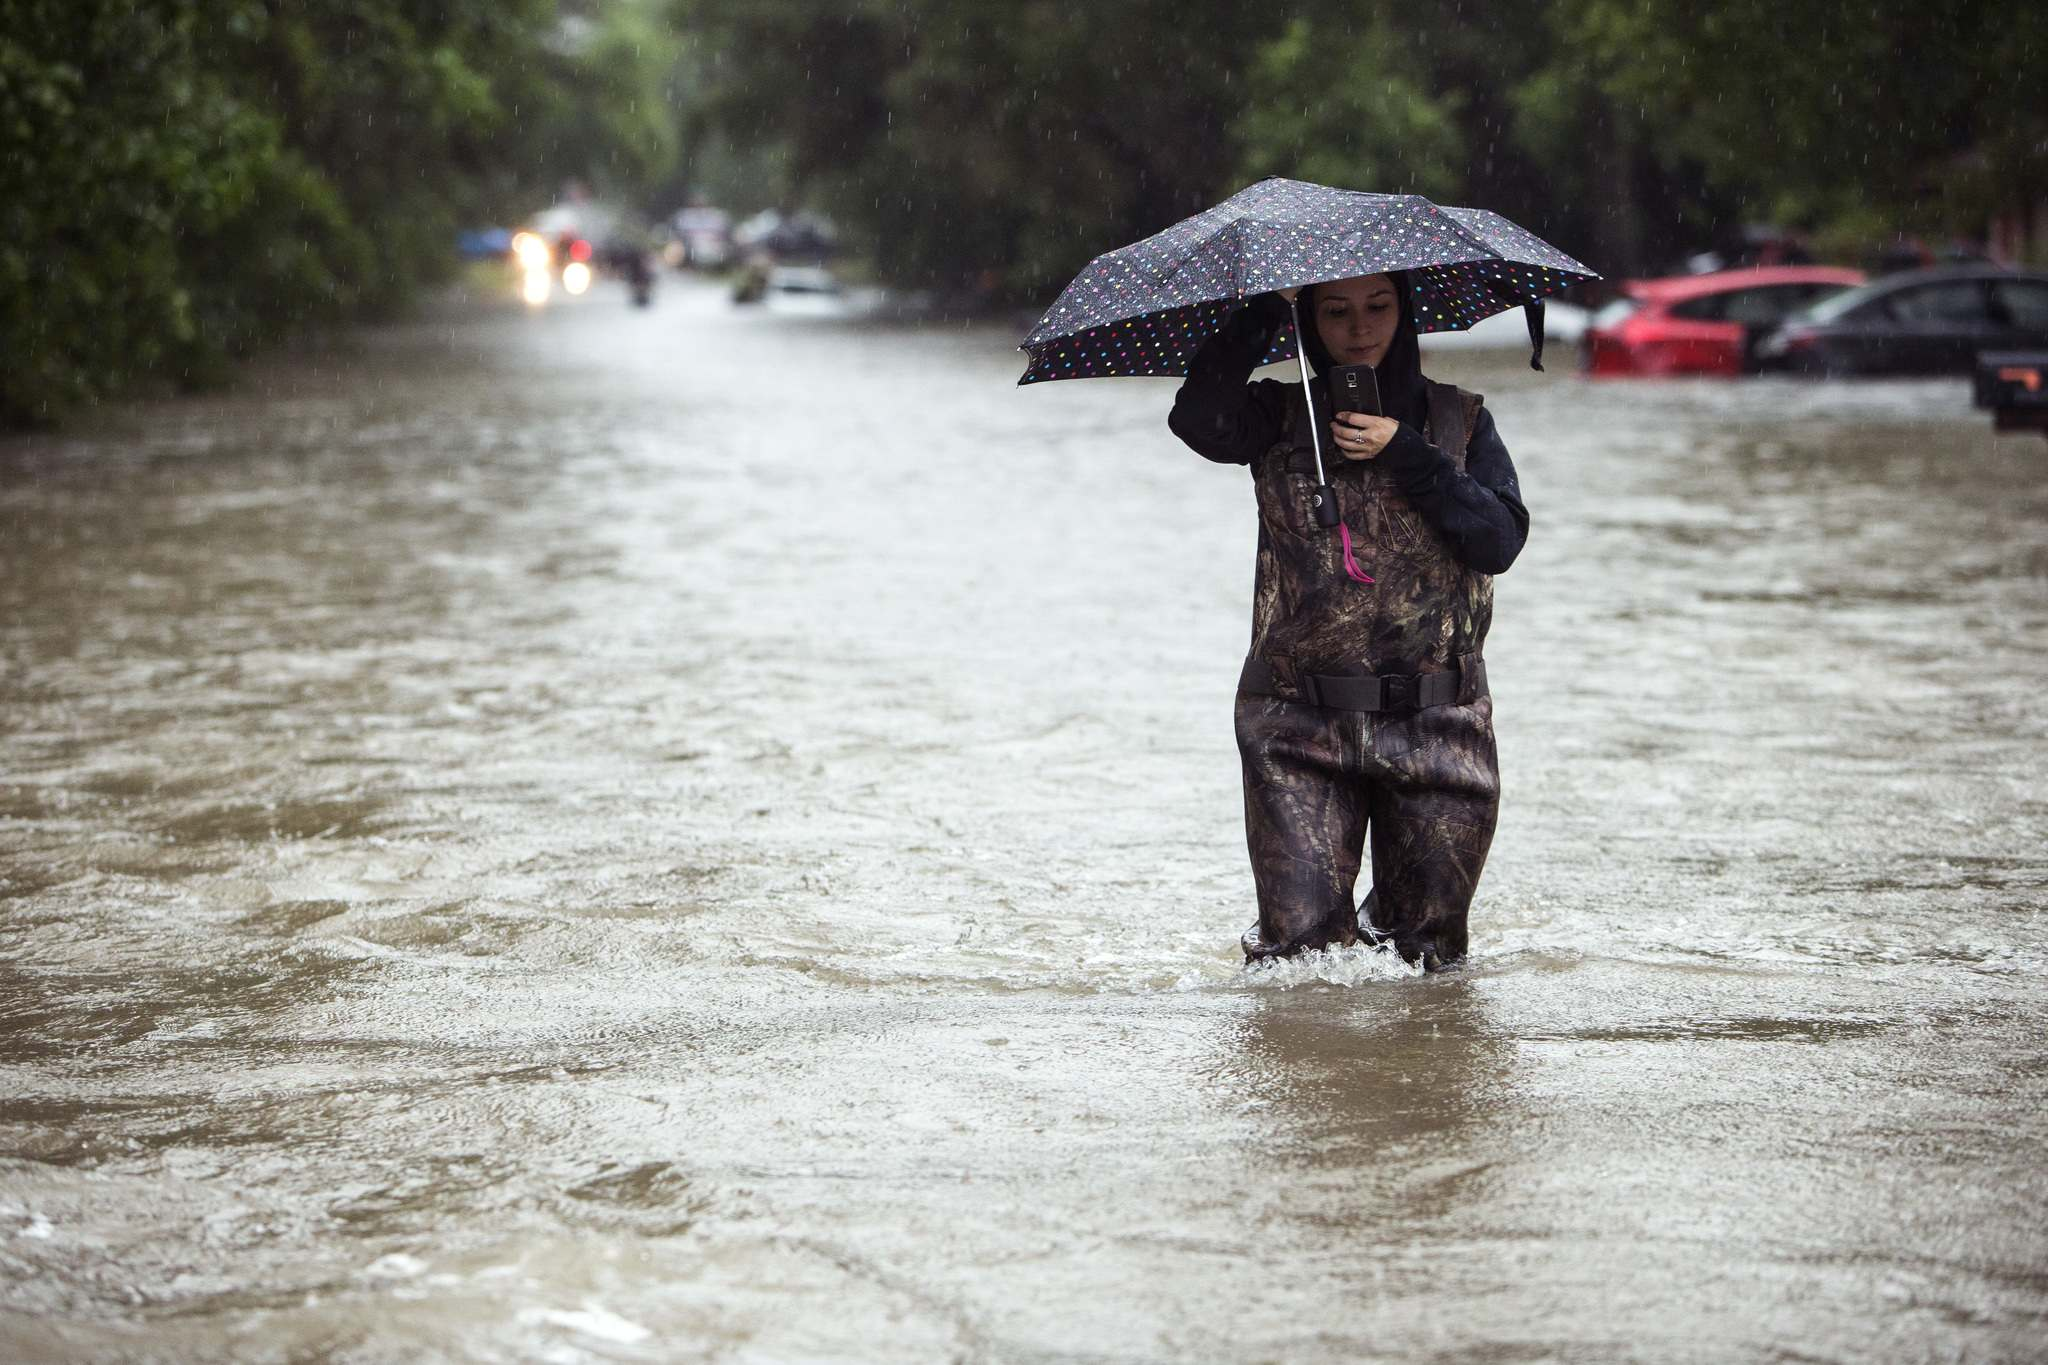 Brett Coomer/Houston Chronicle via AP</p><p>A woman walks out of high water in the Timber Lakes Timber Ridge subdivision on Monday, April 18, 2016, in The Woodlands, Texas. More than a foot of rain fell Monday in parts of Houston, submerging scores of subdivisions and several major interstate highways, forcing the closure of schools and knocking out power to thousands of residents who were urged to shelter in place.</p>